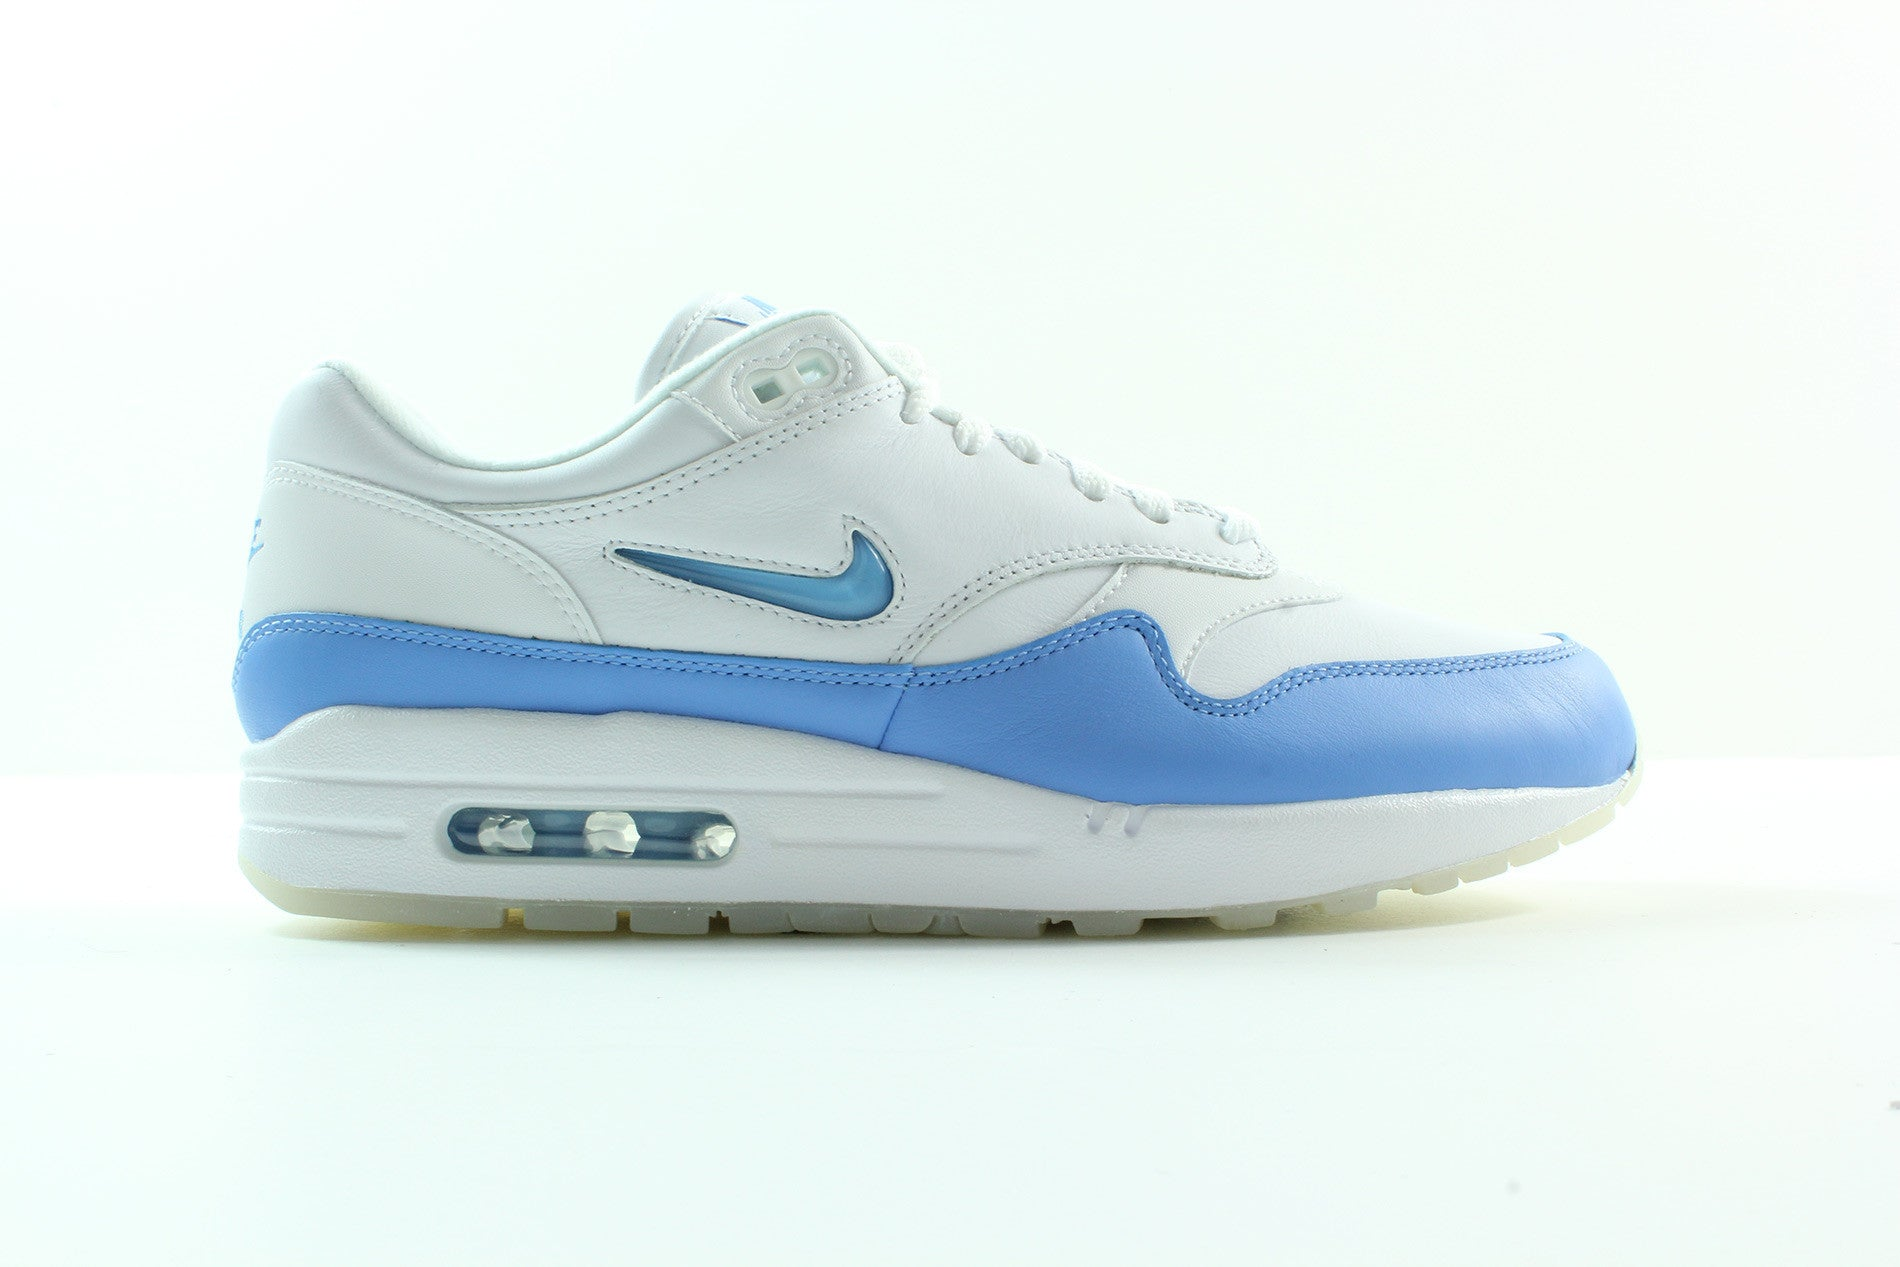 Nike - Air Max 1 Premium SC (WHITE/UNIVERSITY BLUE-UNIVERSITY BLUE) 918354-102